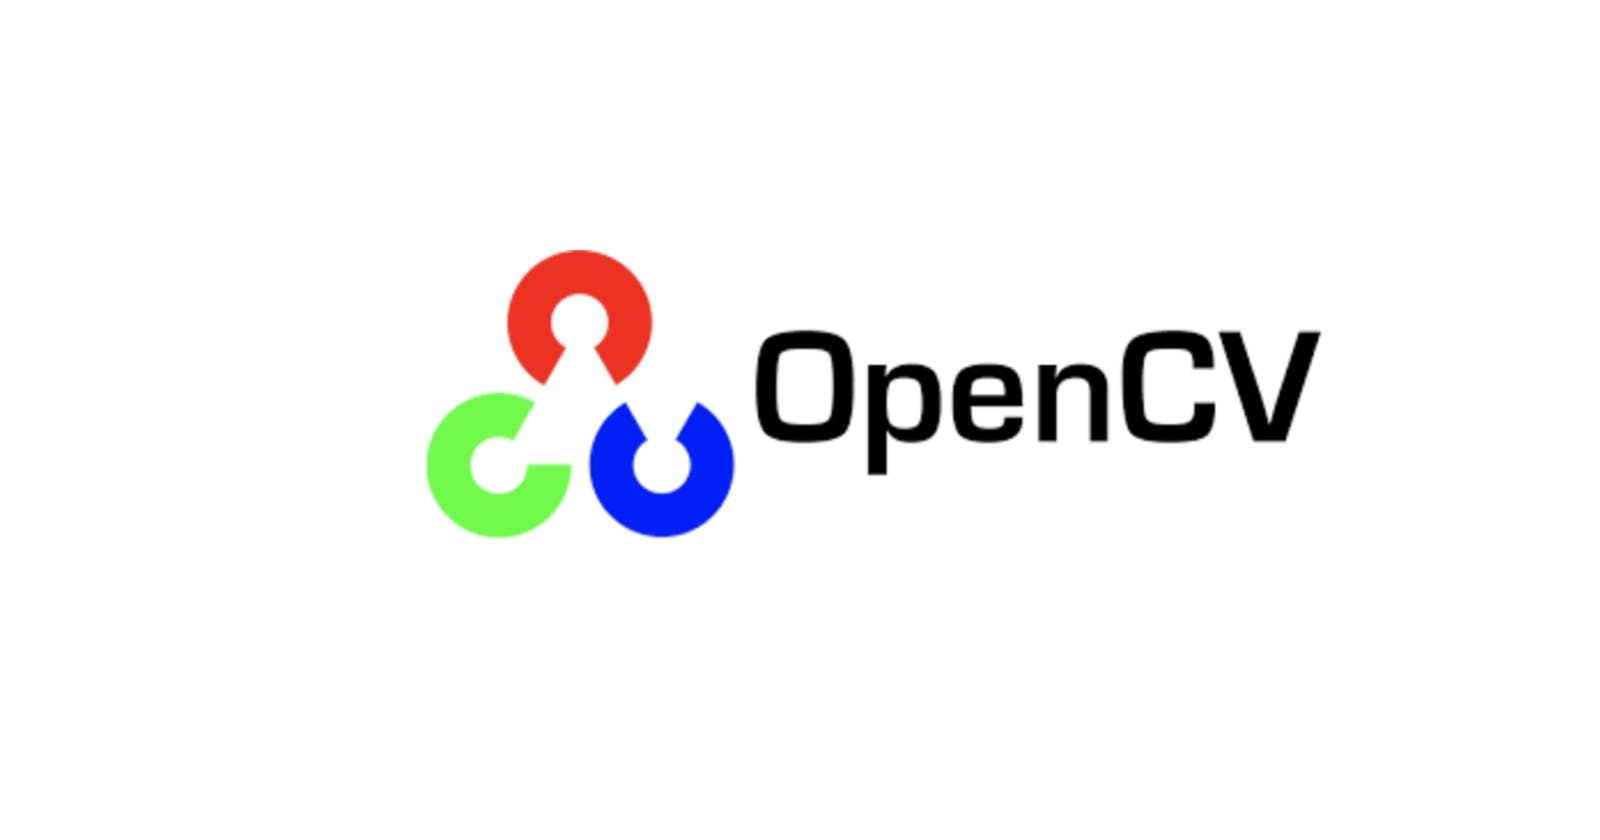 [project-opencv 01] I created three different projects with opencv after learning for one week